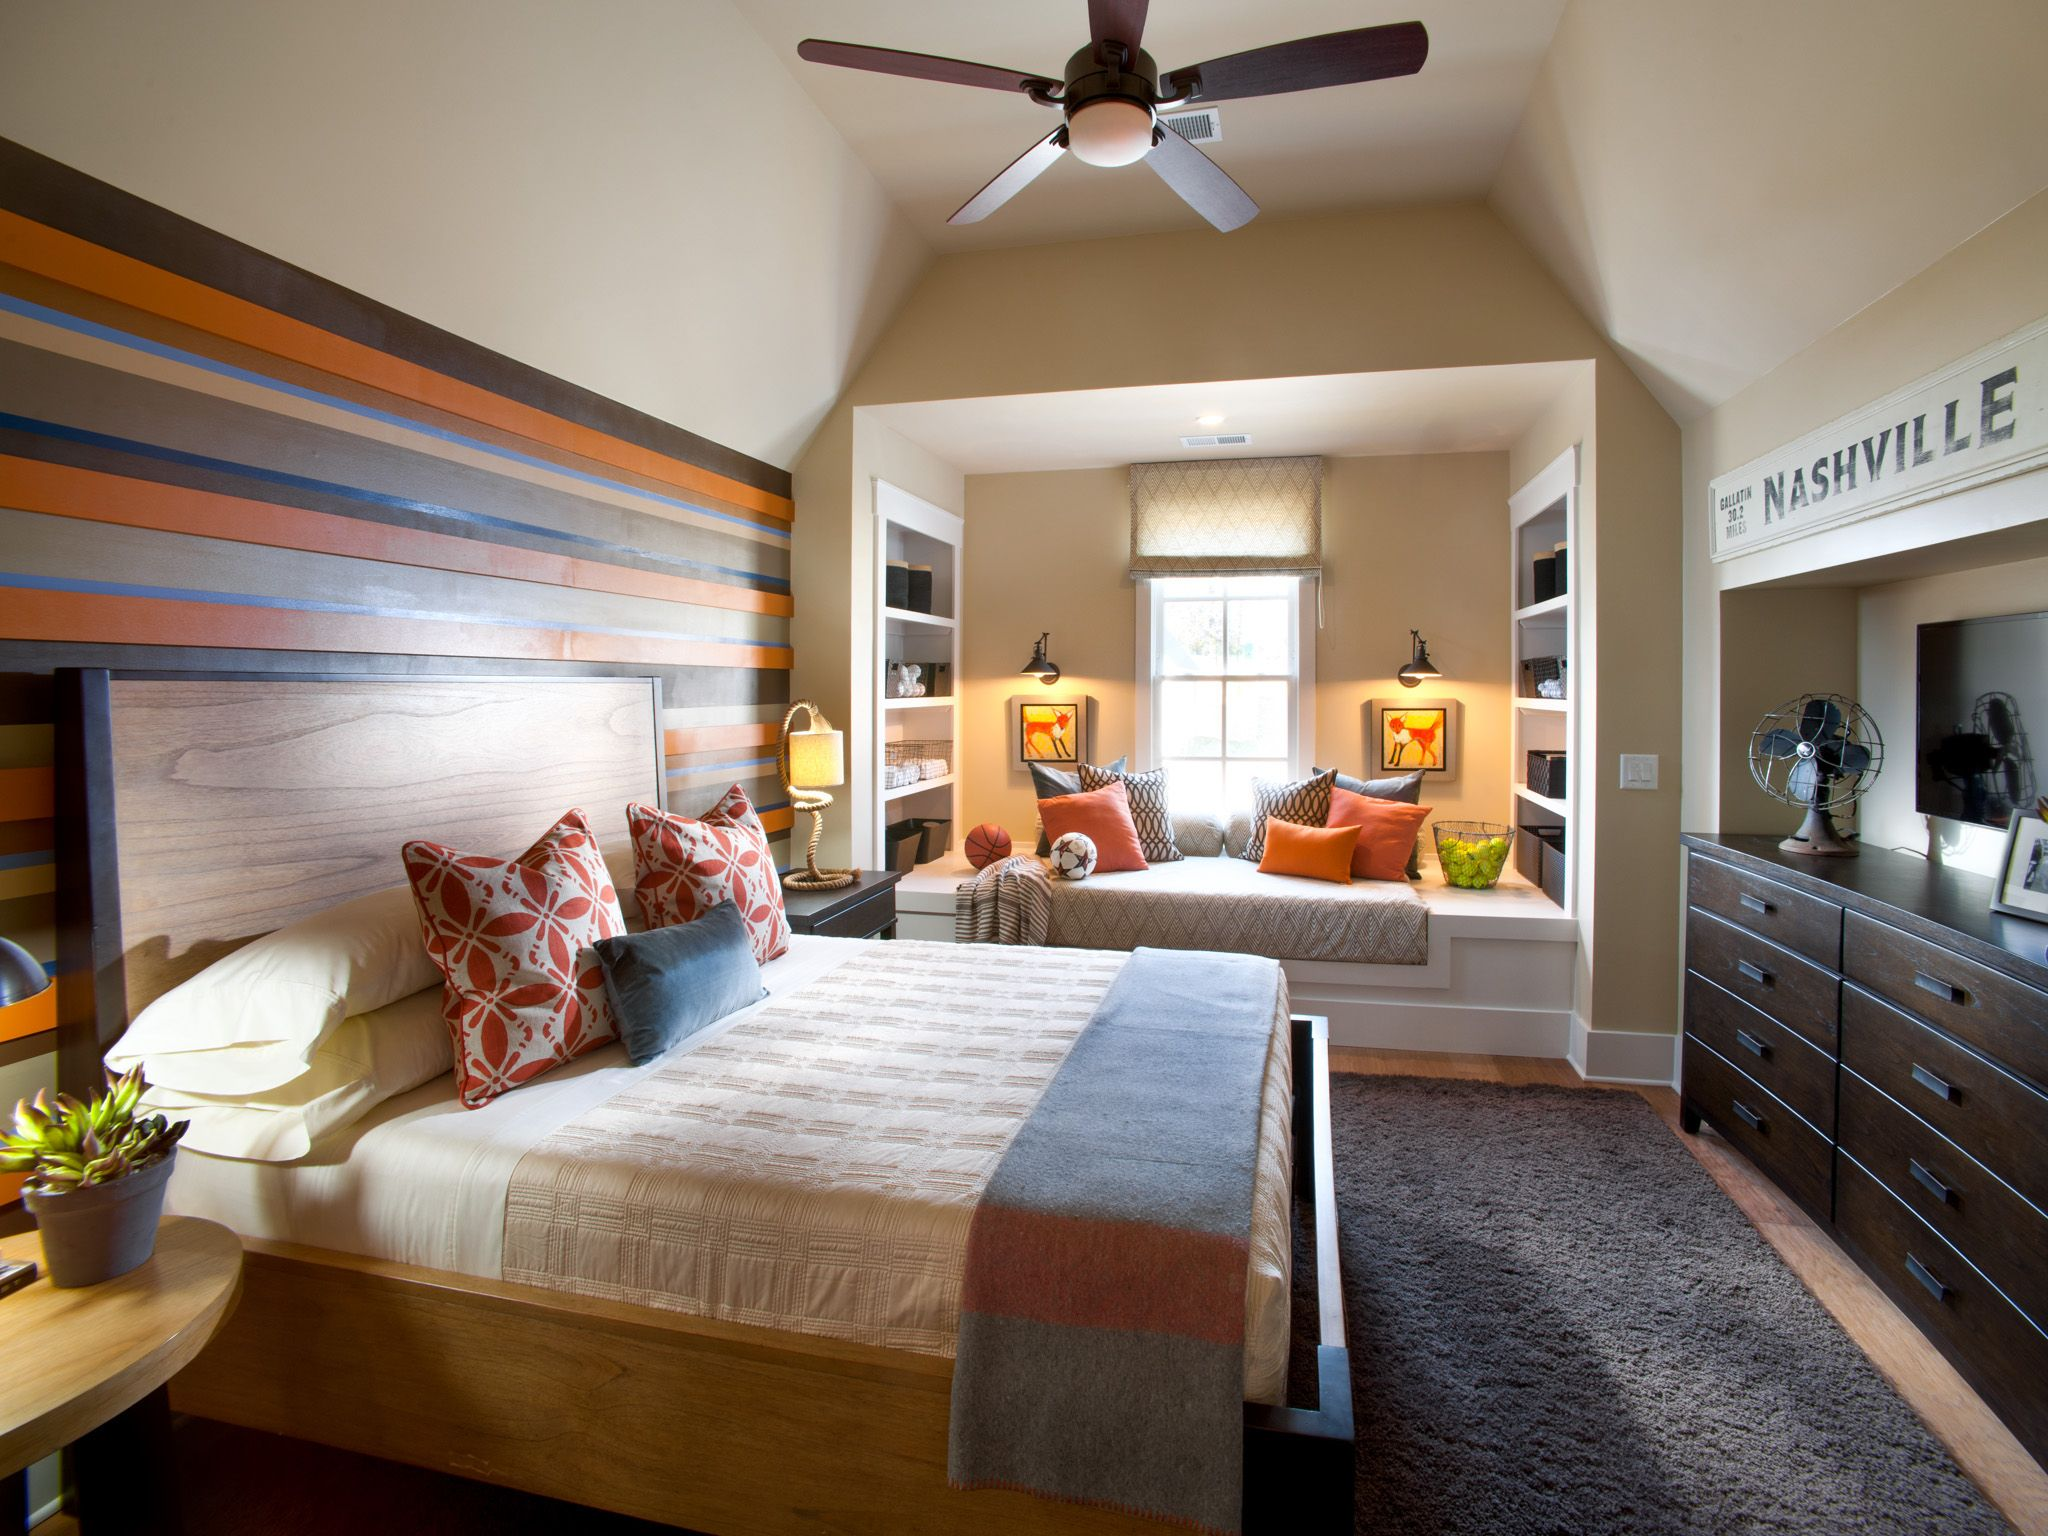 Bedroom Styles 2014 design on a dime bedrooms - bedroom | awesome home design for you!